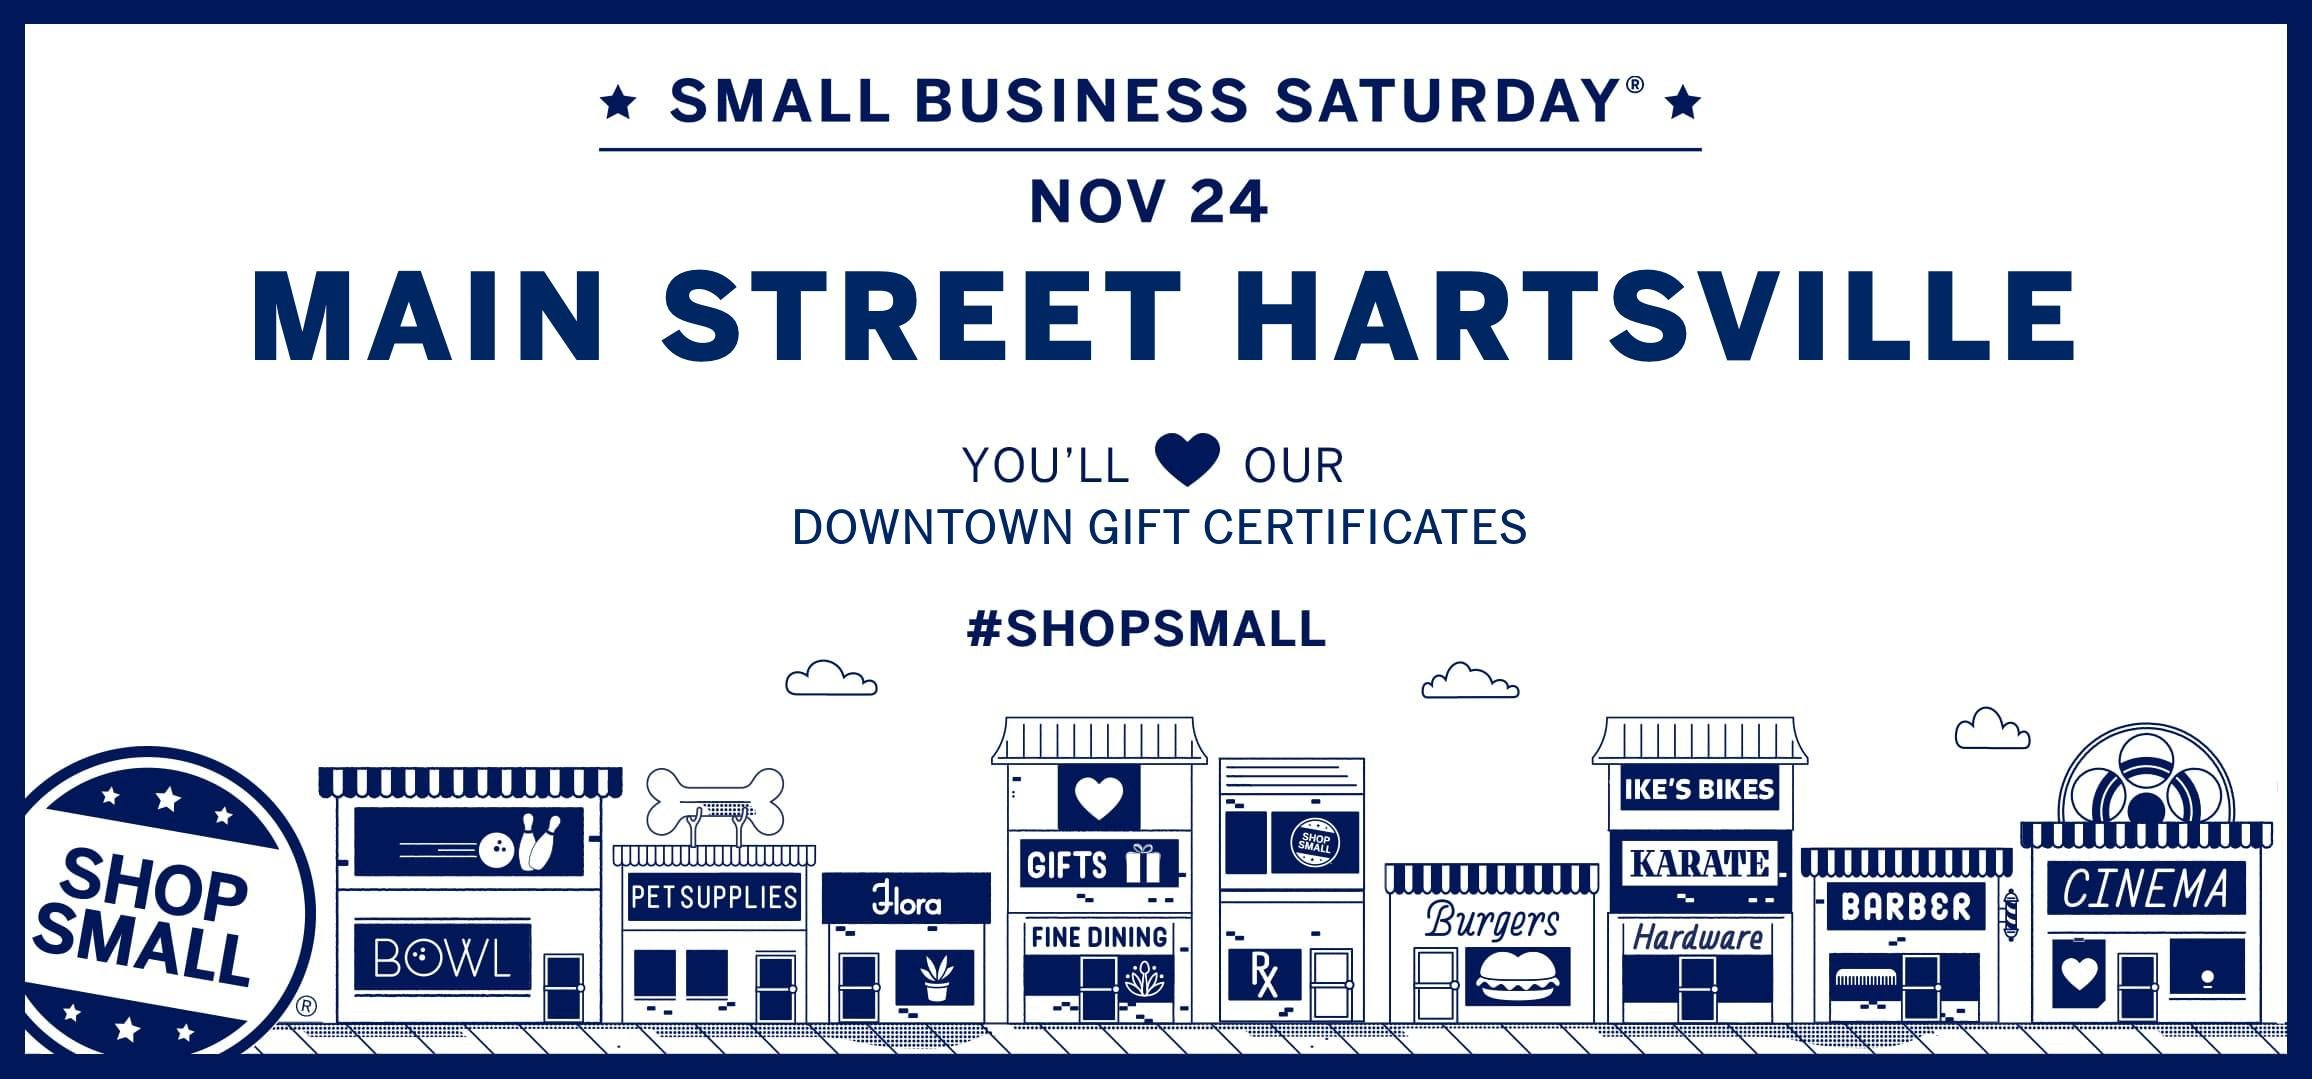 Main Street Hartsville's Downtown Gift Certificates are great for Small Business Saturday!